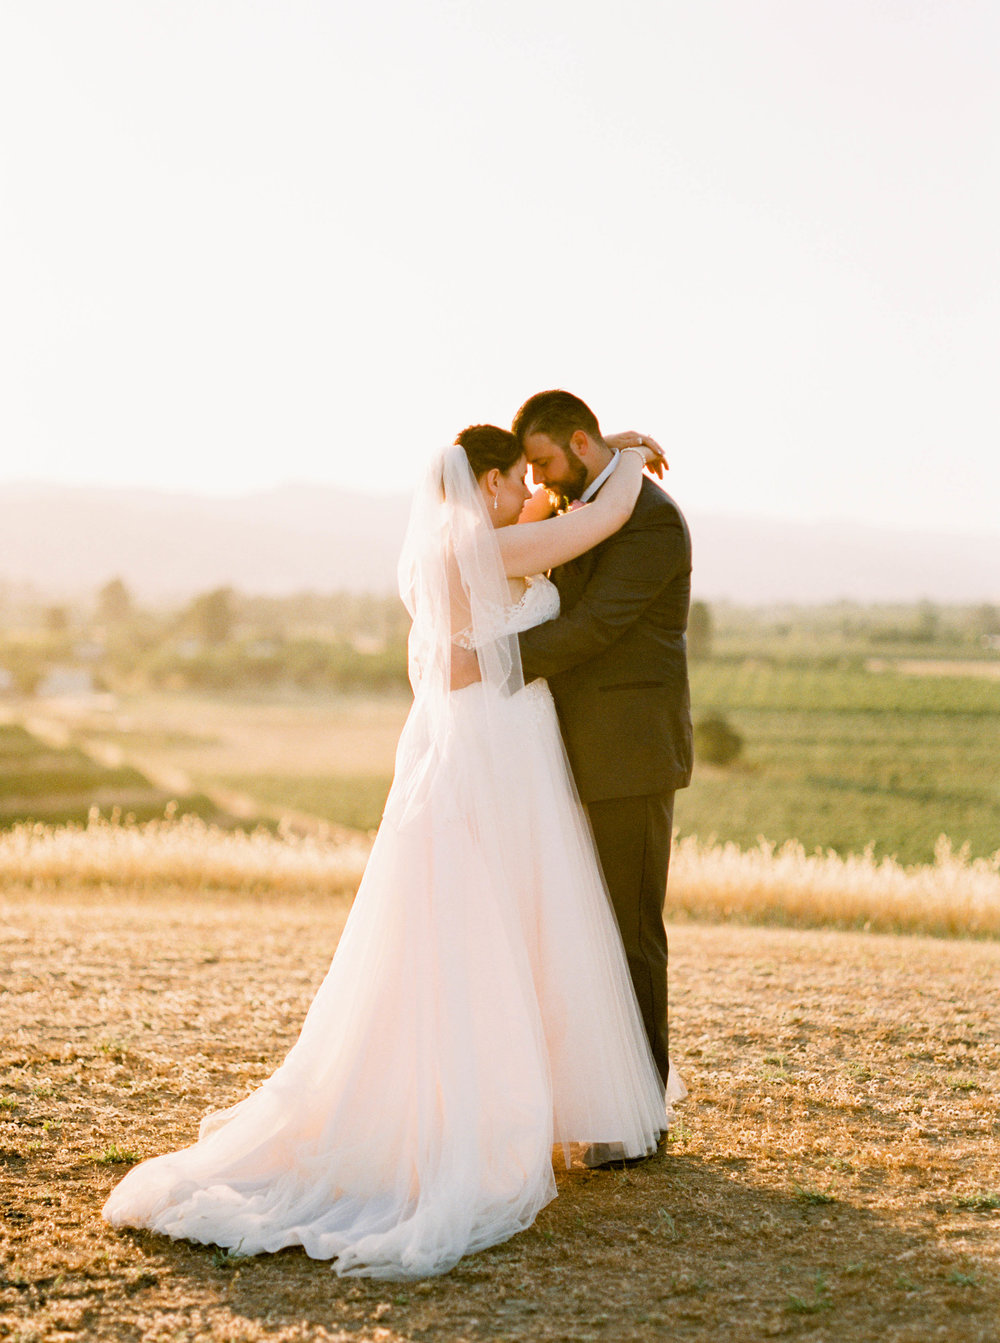 DennisRoyCoronel_Photography_taberranch_Wedding-17.jpg